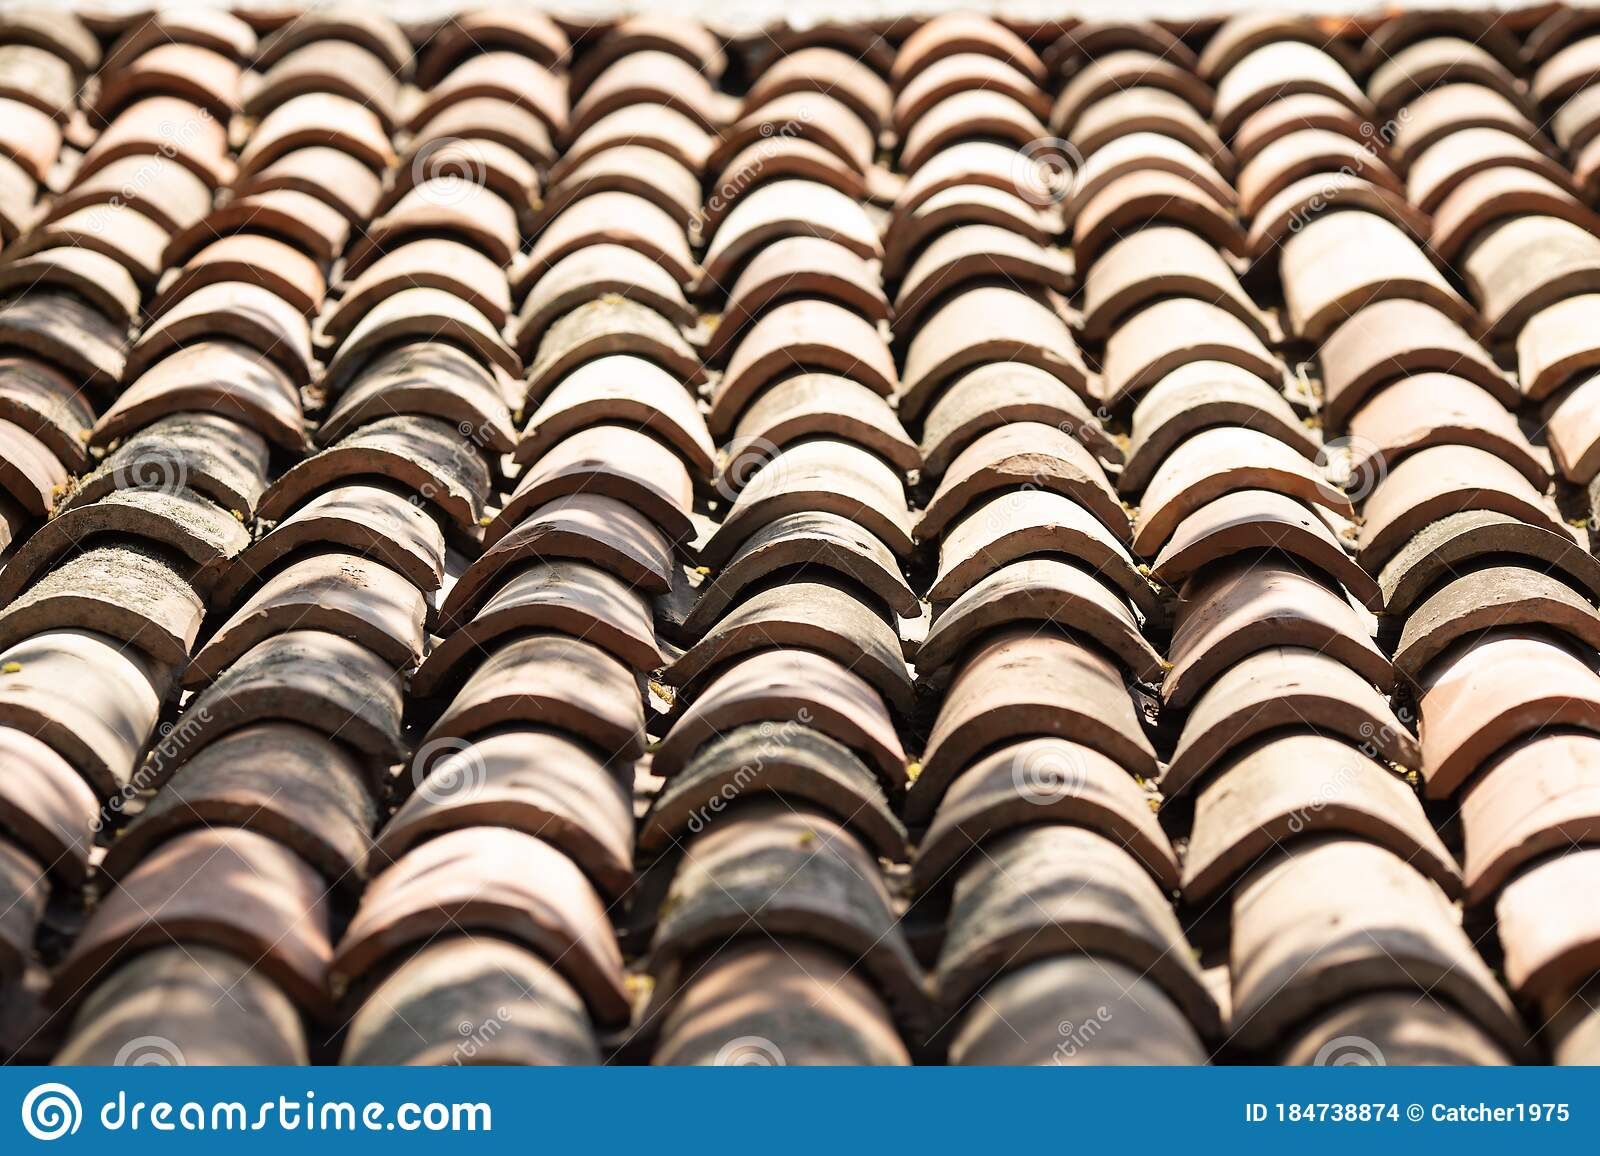 Closeup Of Old Red Clay Roof Tiles Stock Photo Image Of Rooftop Material 184738874